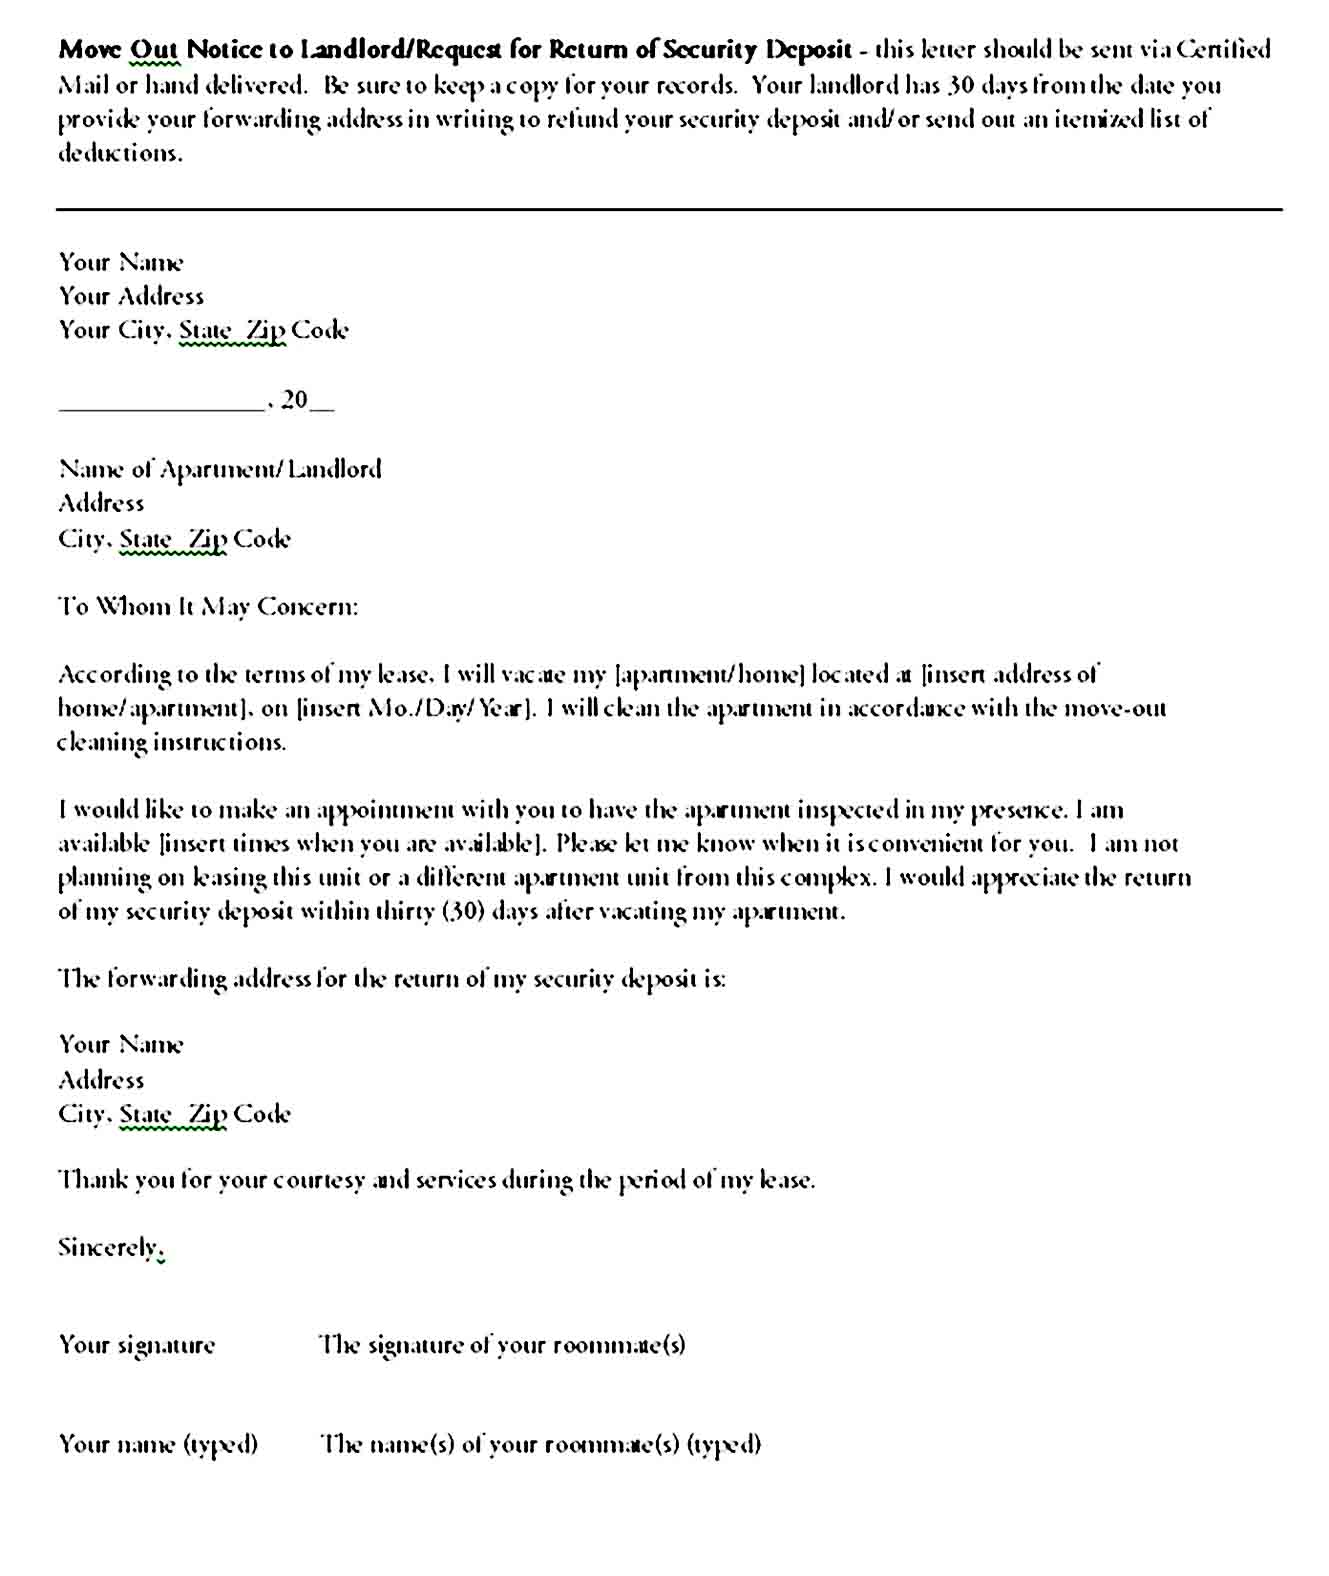 Move Out Notice to Landlord